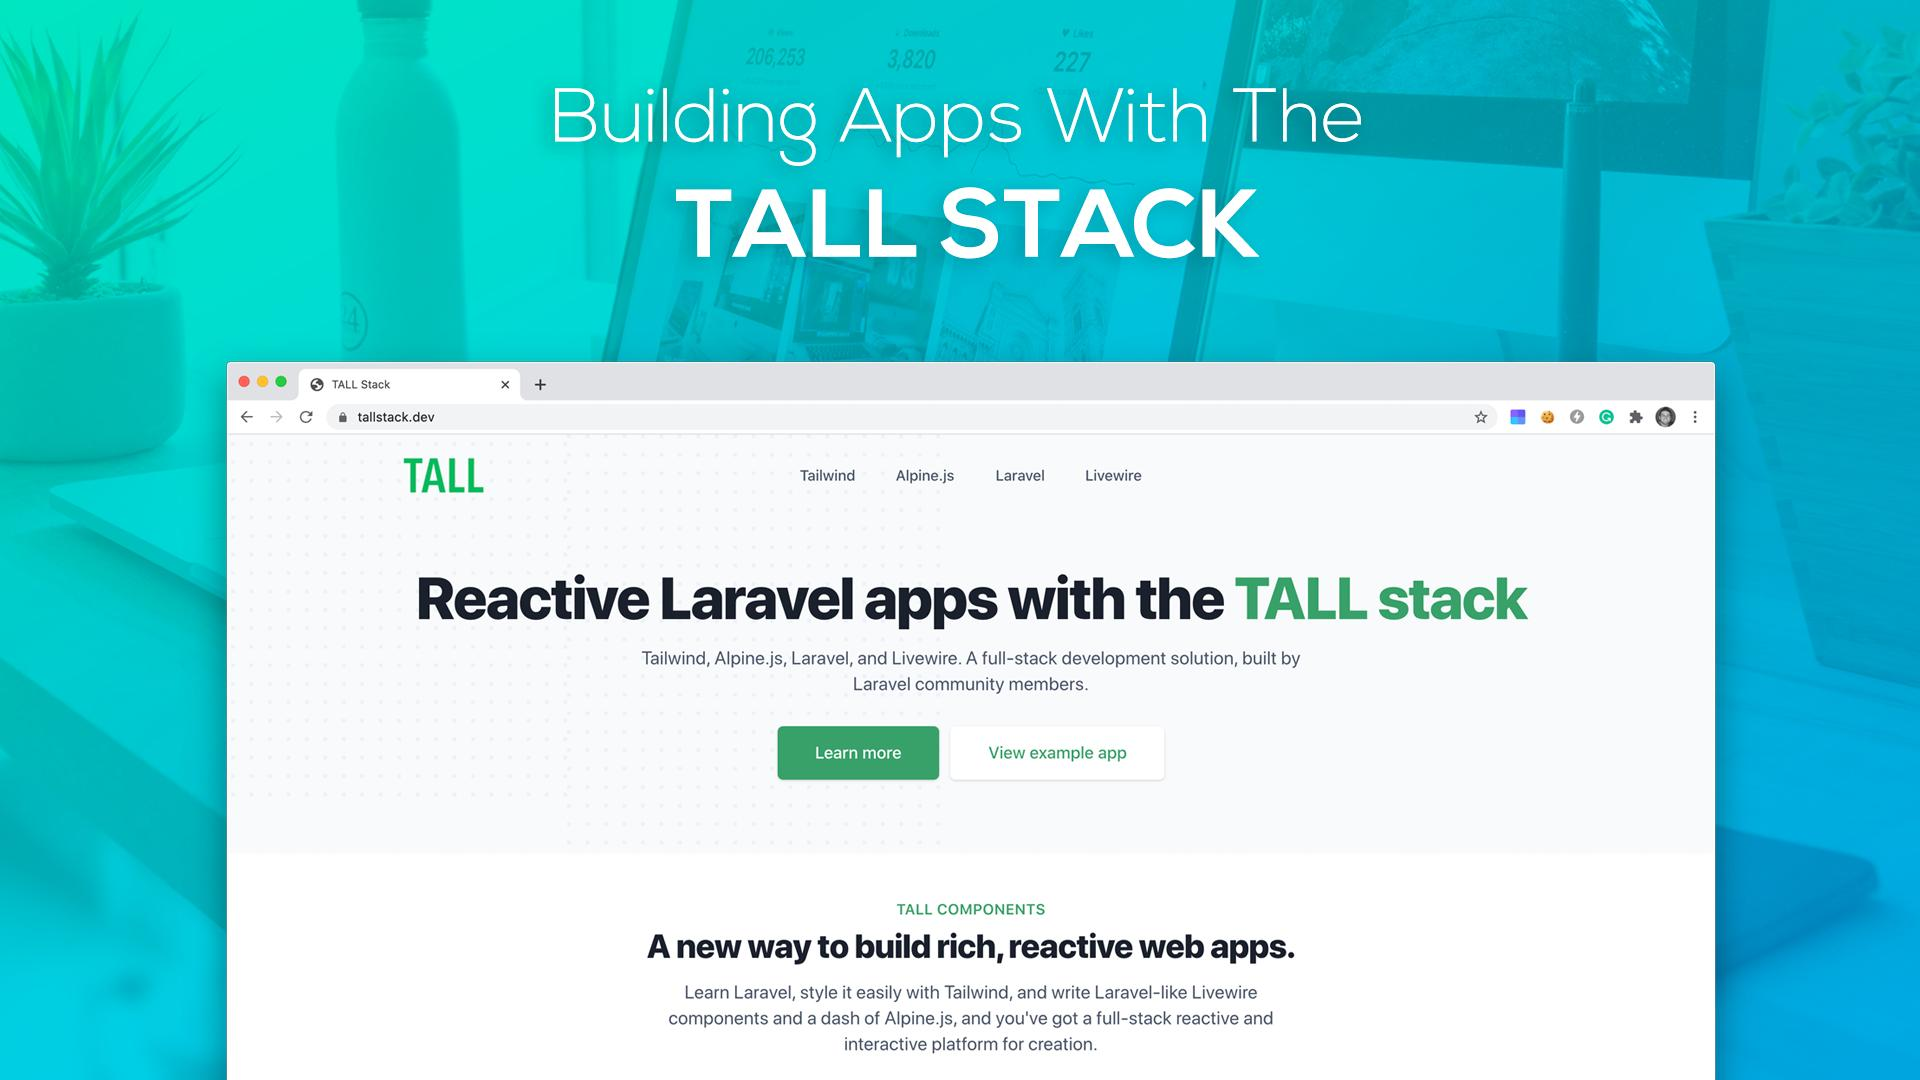 Building Apps with the Tall Stack